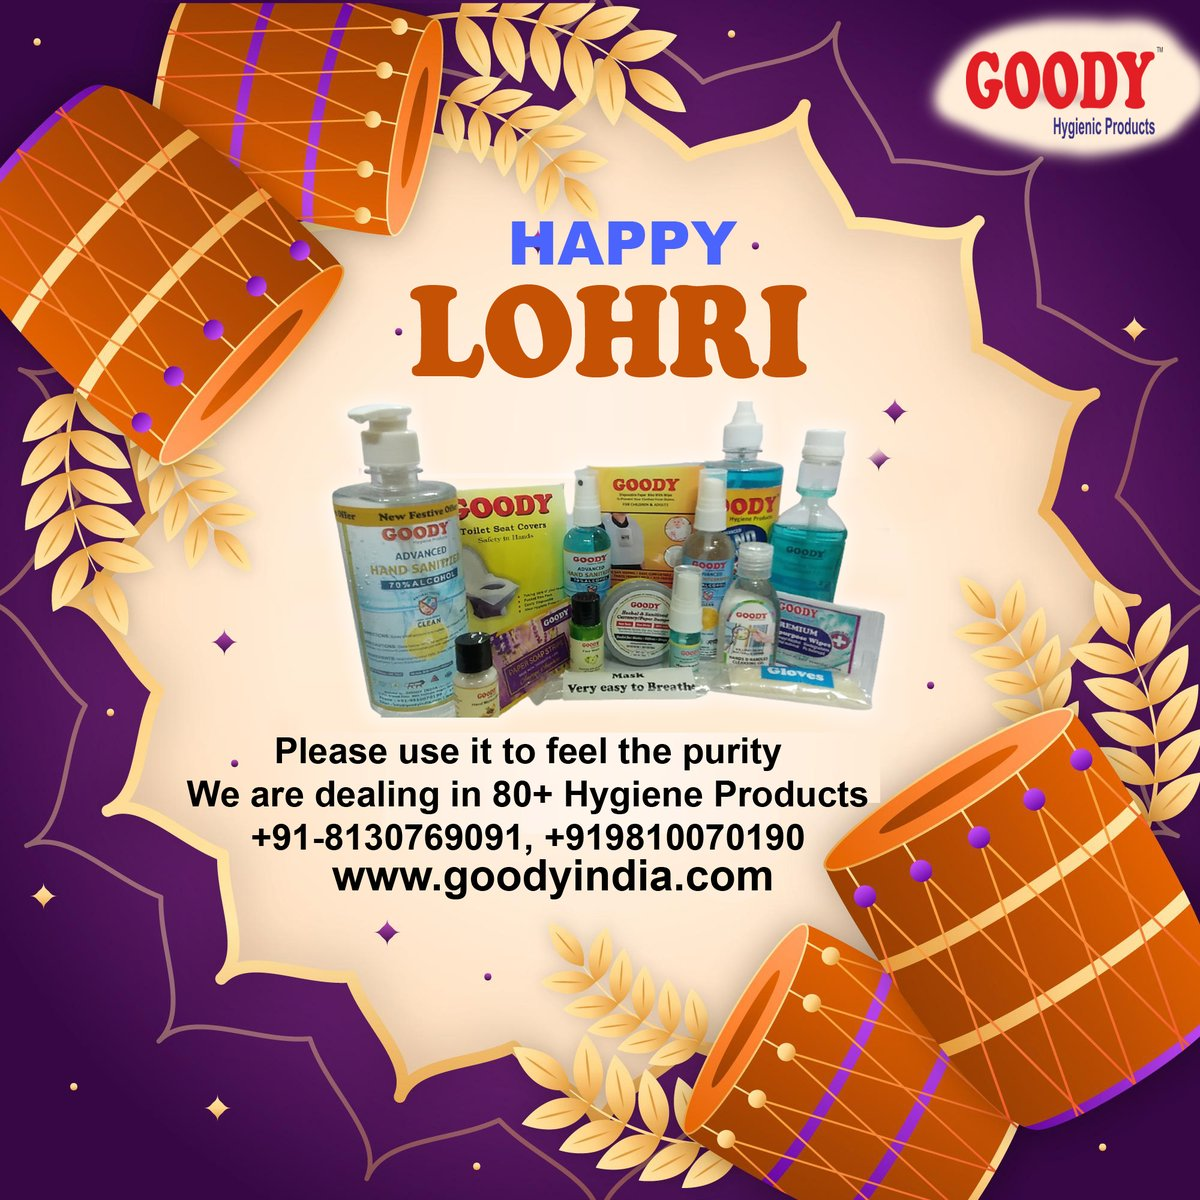 Wish you a Happy Lohri from Goody India https://t.co/psCKDBViVM